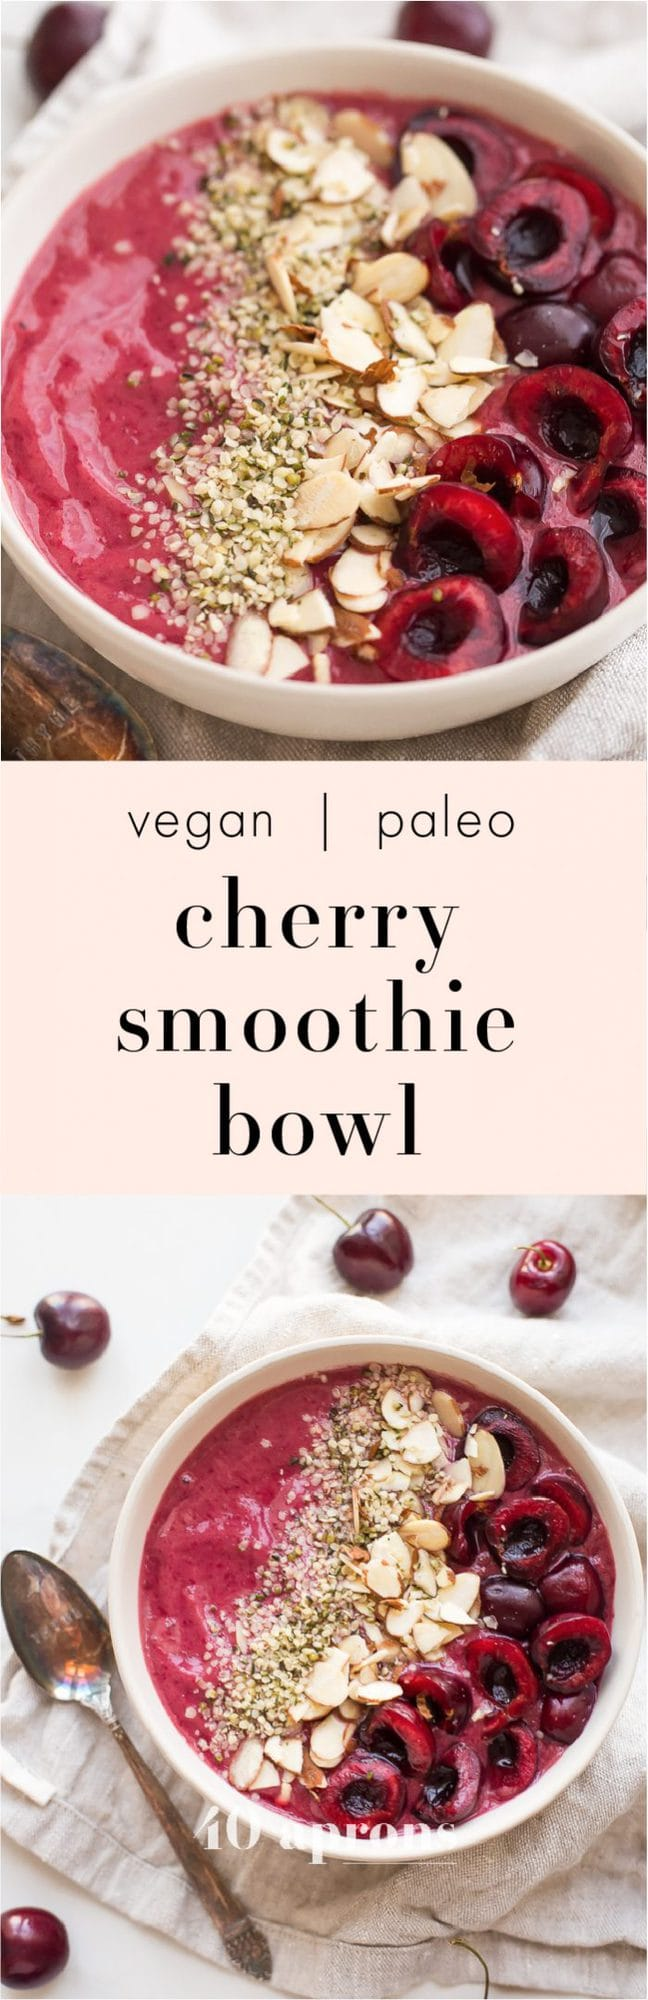 This cherry smoothie bowl is so bright and refreshing yet totally filling. With only a handful of ingredients, this cherry smoothie bowl comes together in just a few minutes. This vegan smoothie bowl is perfect for the spring or summer and will keep you full for hours! Such a fantastic paleo smoothie bowl, too. It tastes so much like cherry pie: the vanilla extract really makes it!